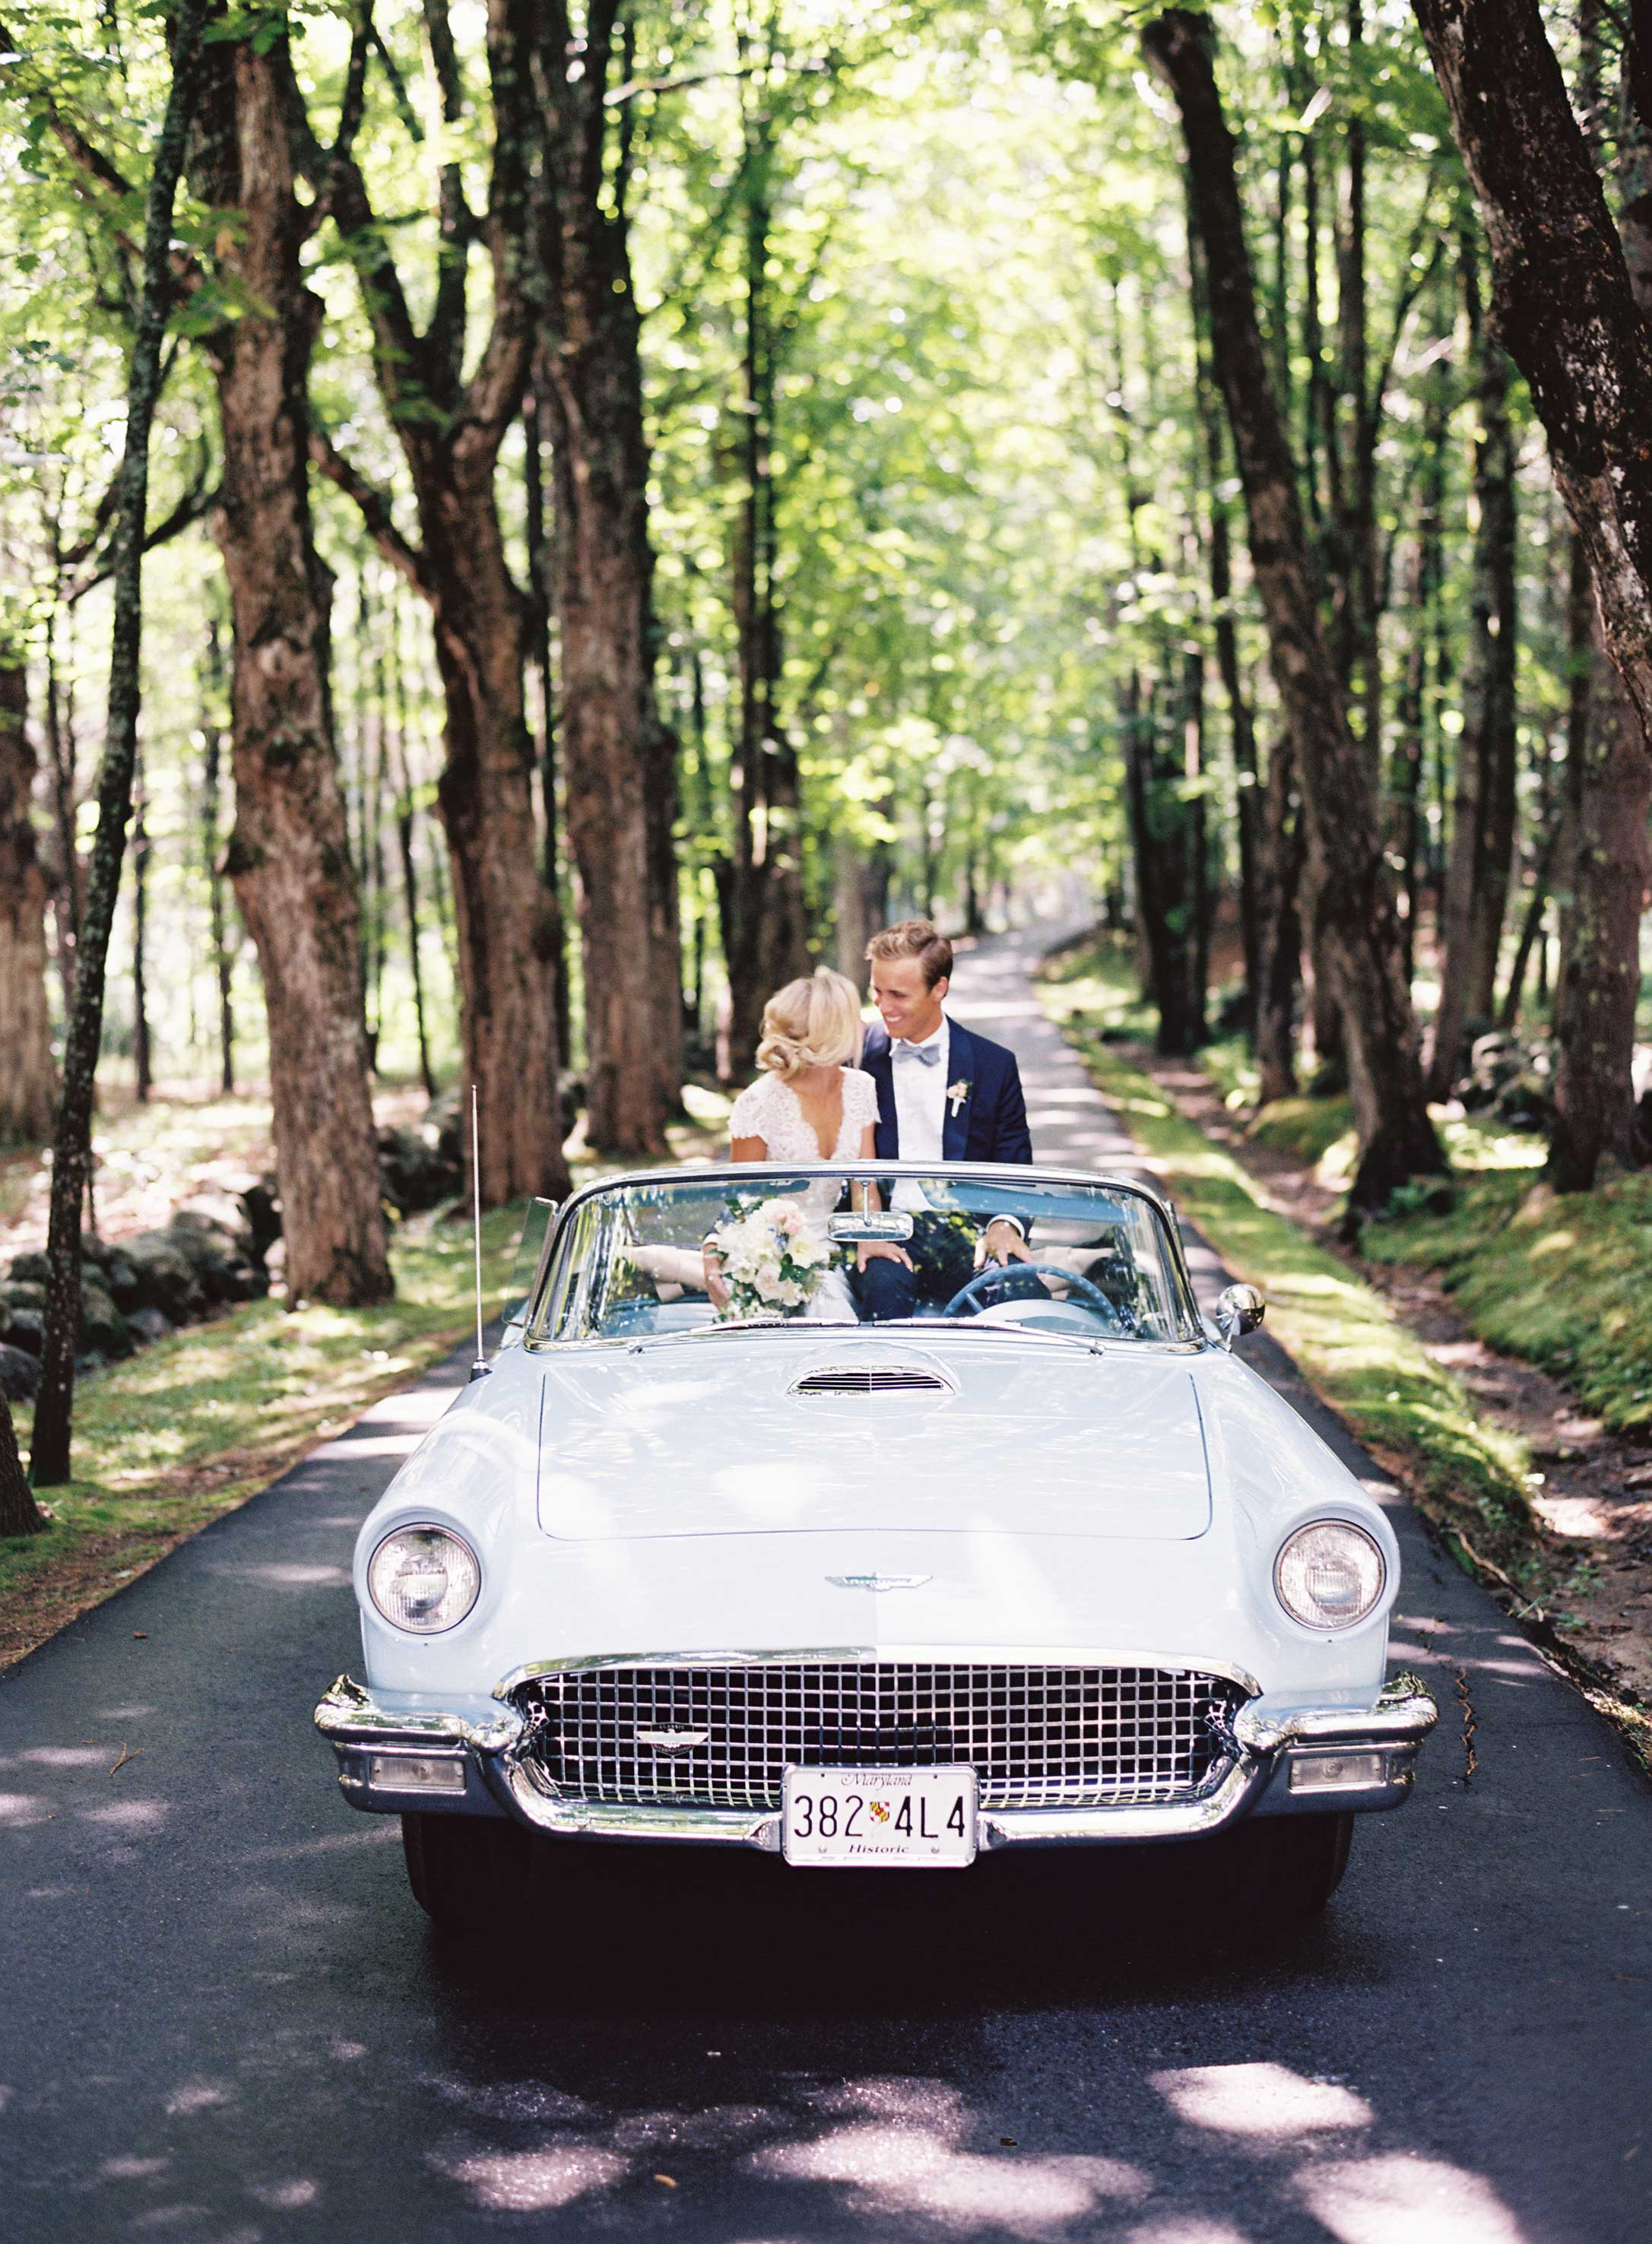 Baby blue convertible wedding getaway car royal wedding inspiration